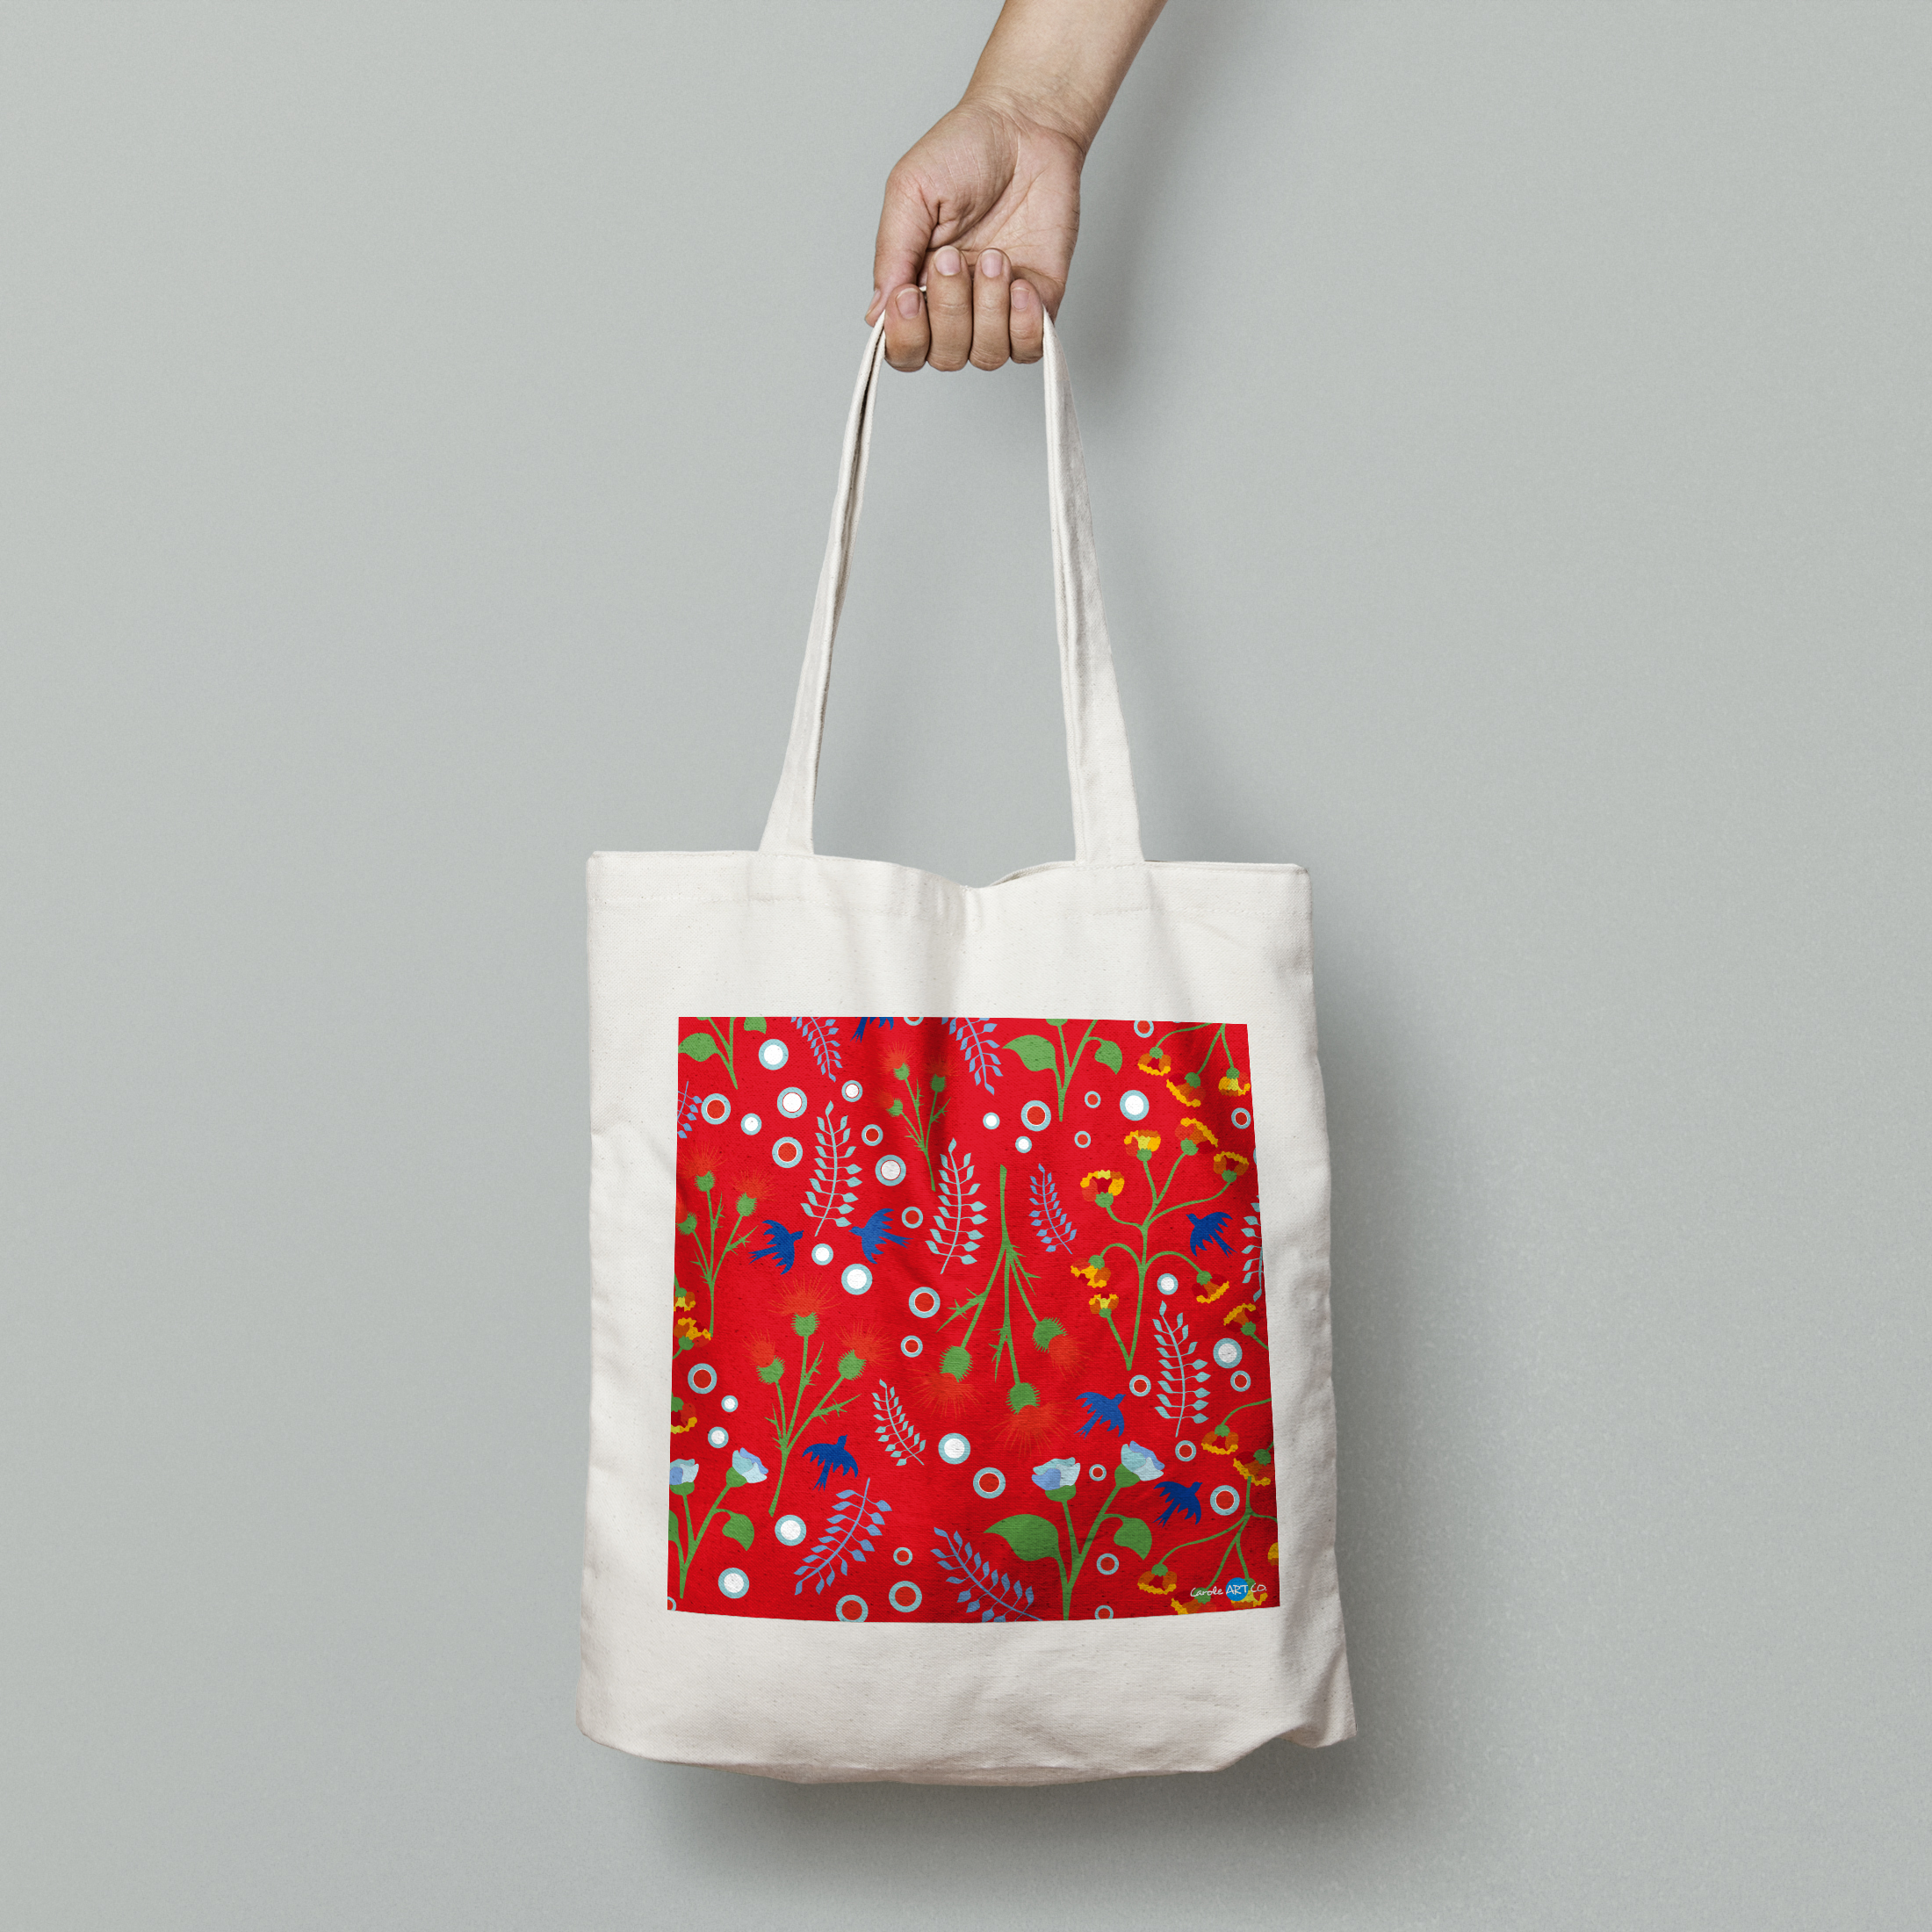 totebag-motifs-bycaroleartco